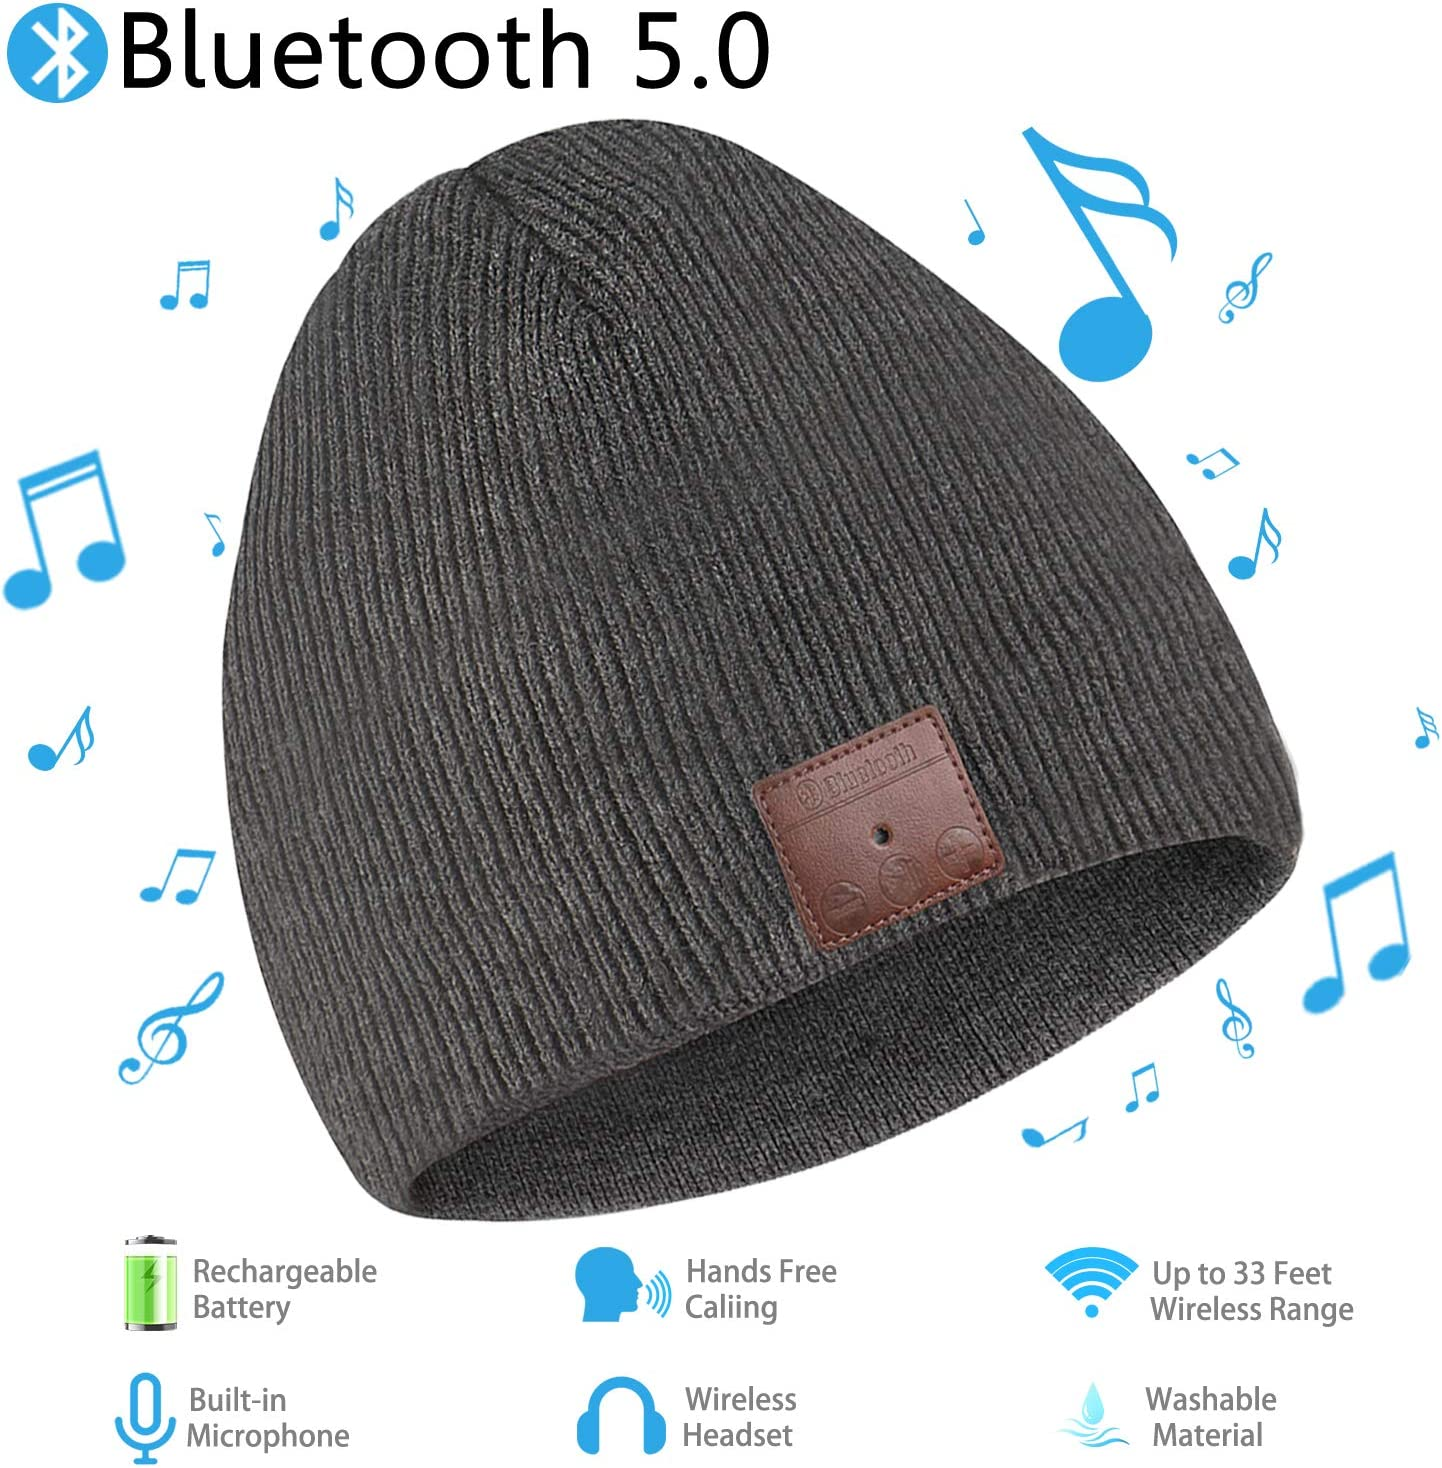 Bluetooth Beanie, Unisex Wireless Bluetooth Beanie Winter Knit Hat, Bluetooth V5.0 HD Stereo Musical Headphones Earphones with Speakers Beanies Hats Cap, Unique Christmas Tech Gifts for Men Women